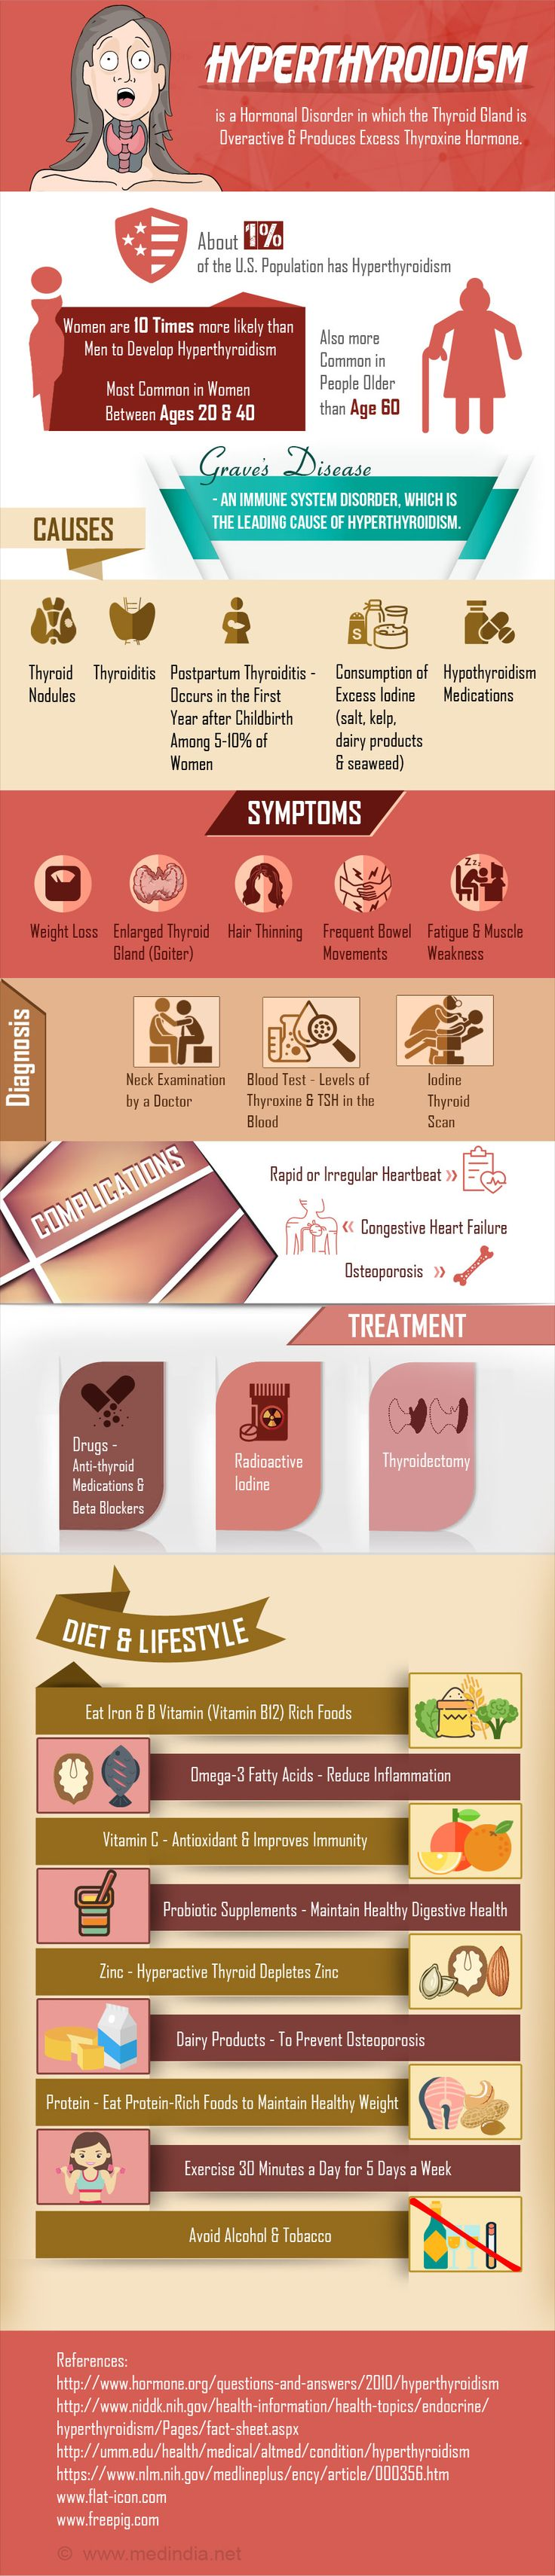 Infographic on Hyperthyroidism